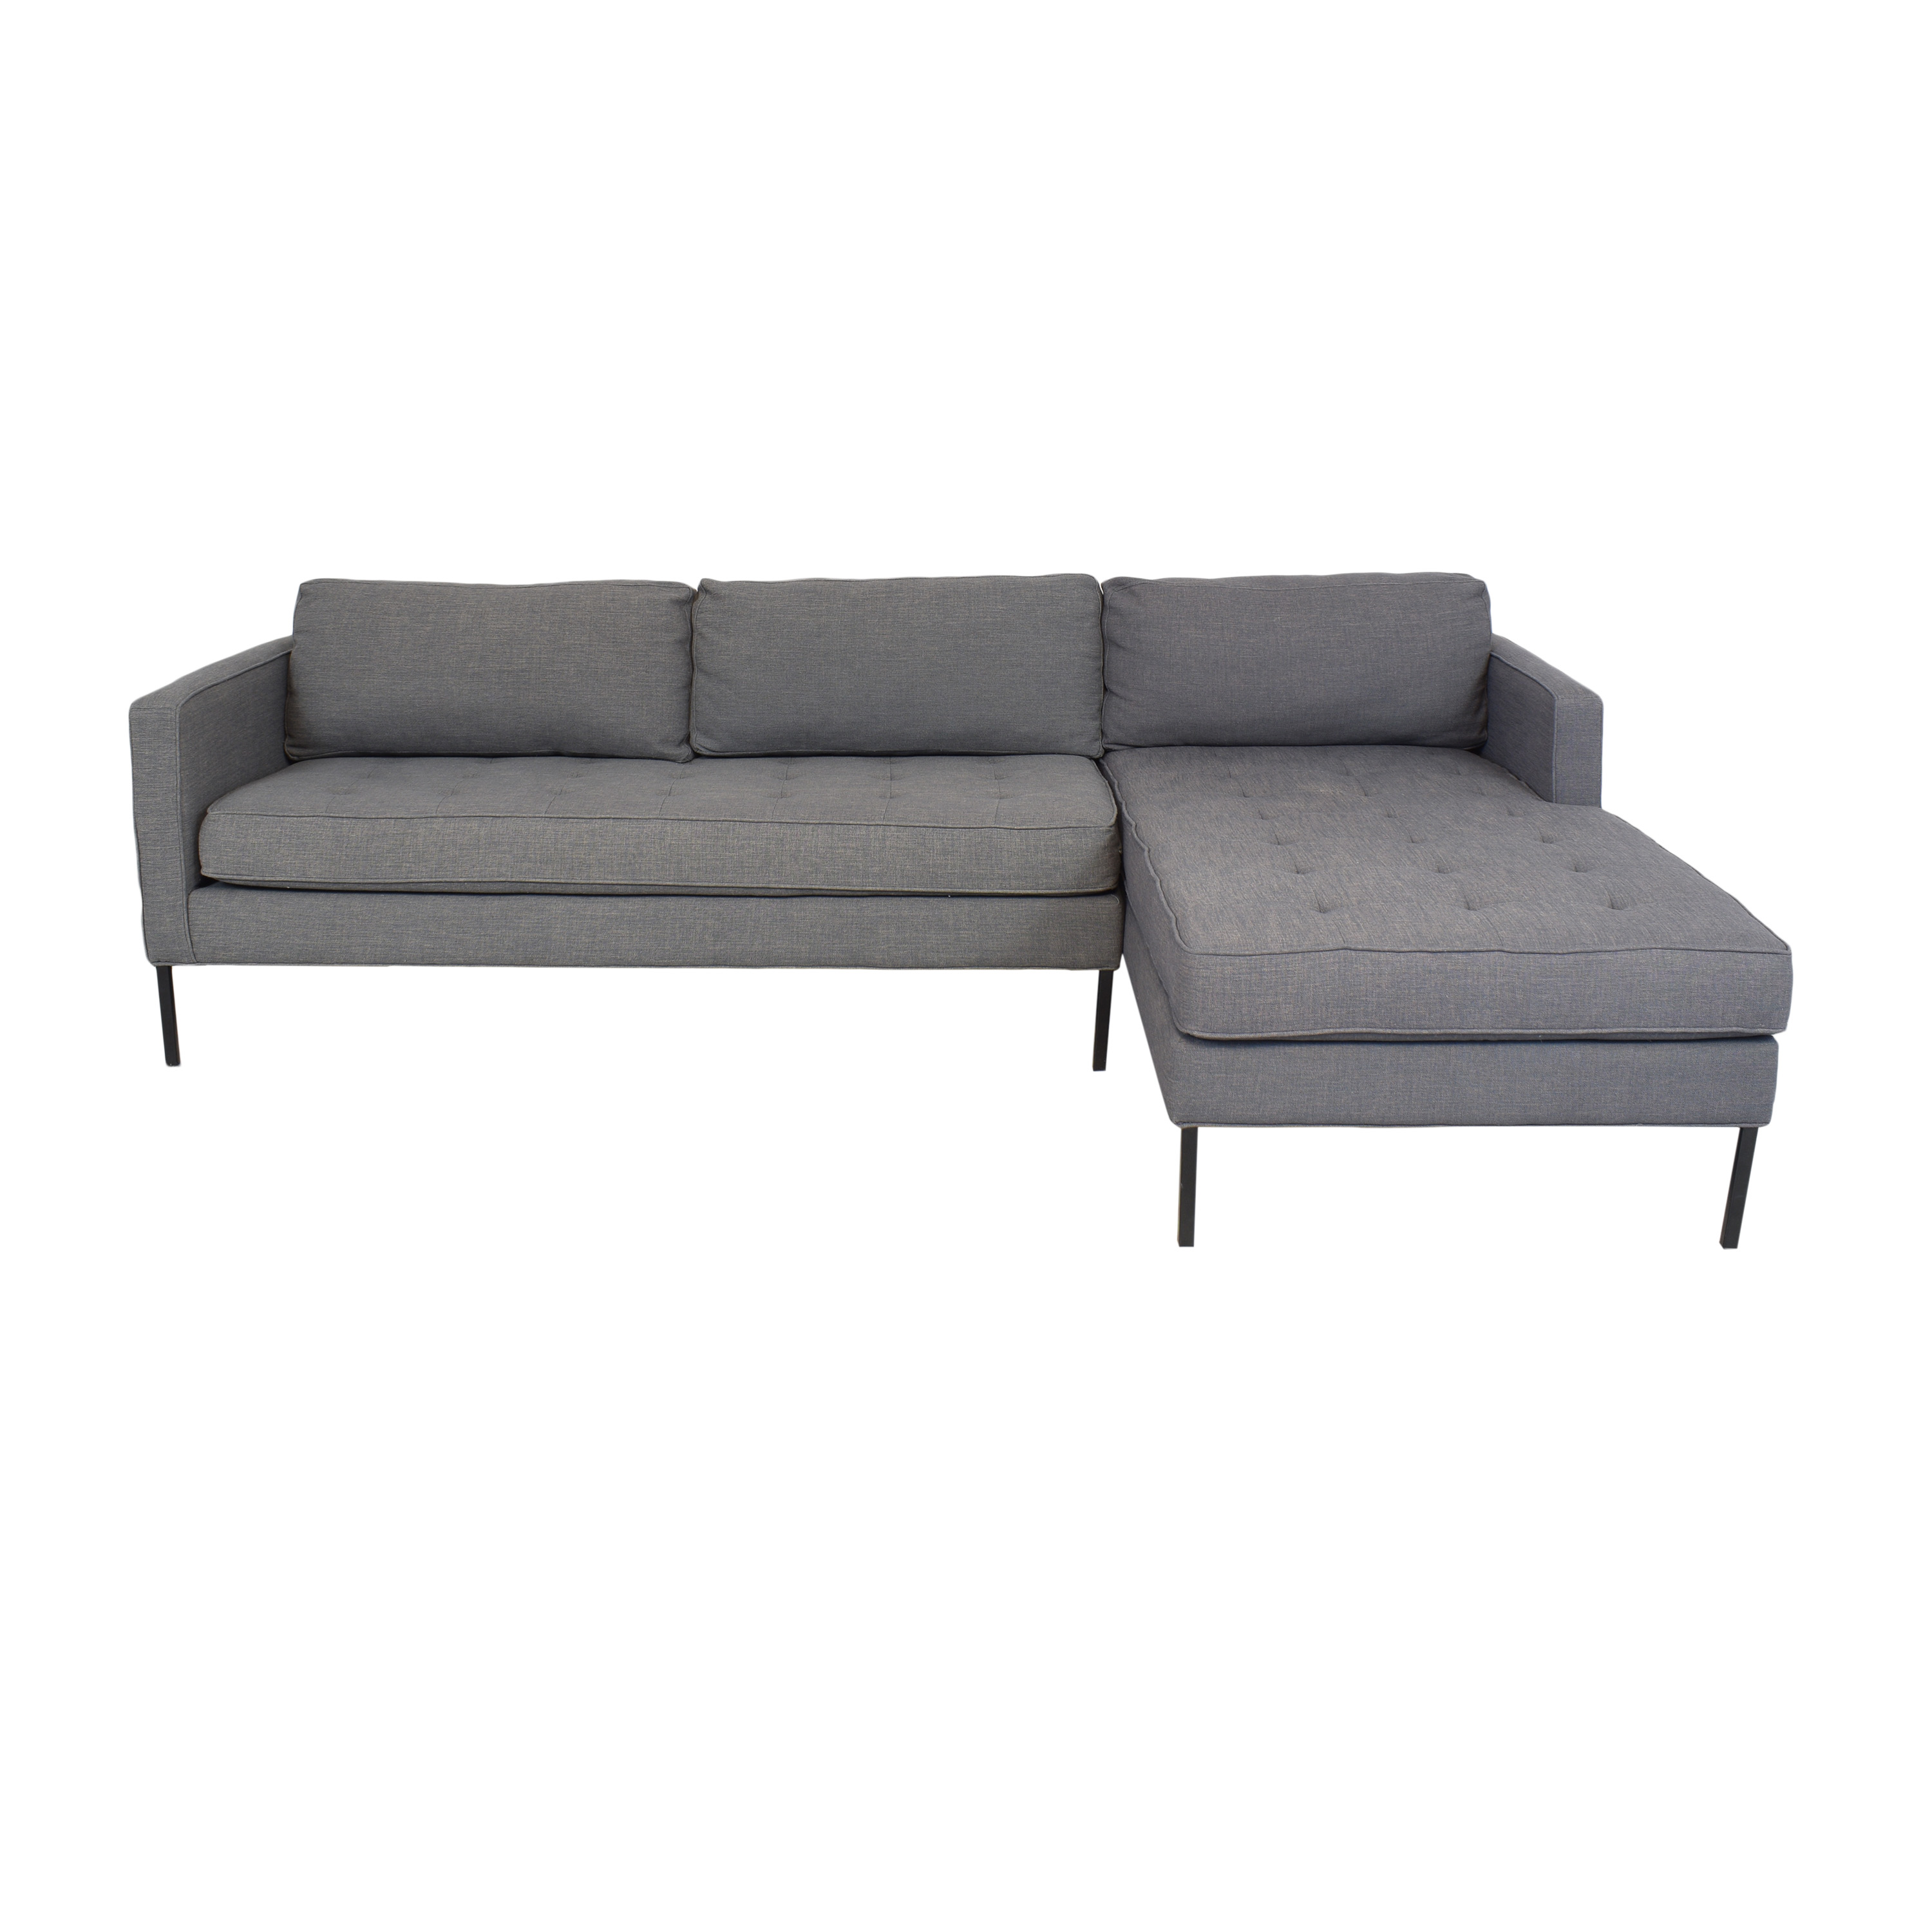 Blu Dot Blu Dot Paramount Chaise Sectional Sofa used